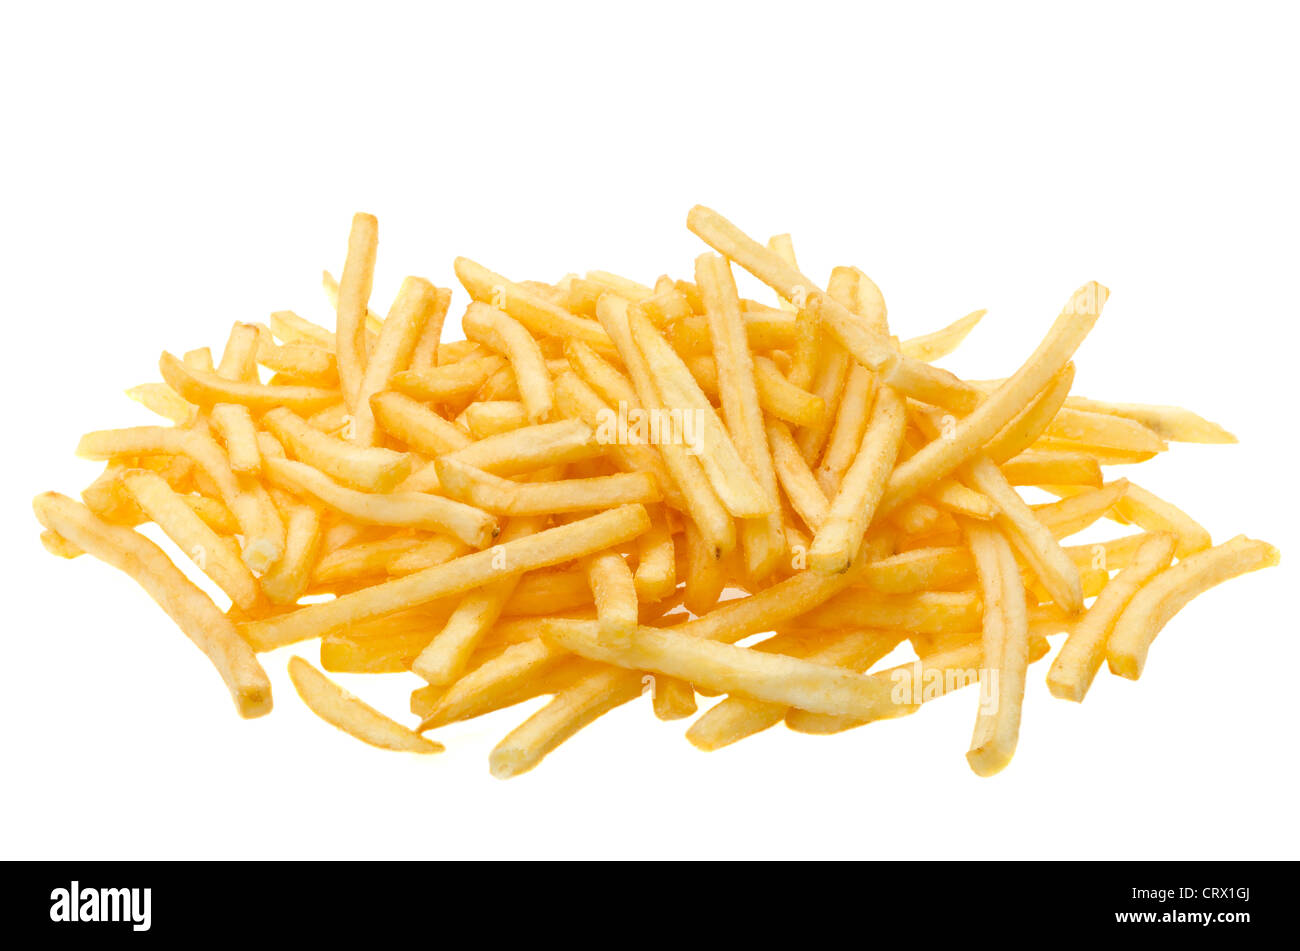 A pile of french fries - studio shot with a white background - Stock Image